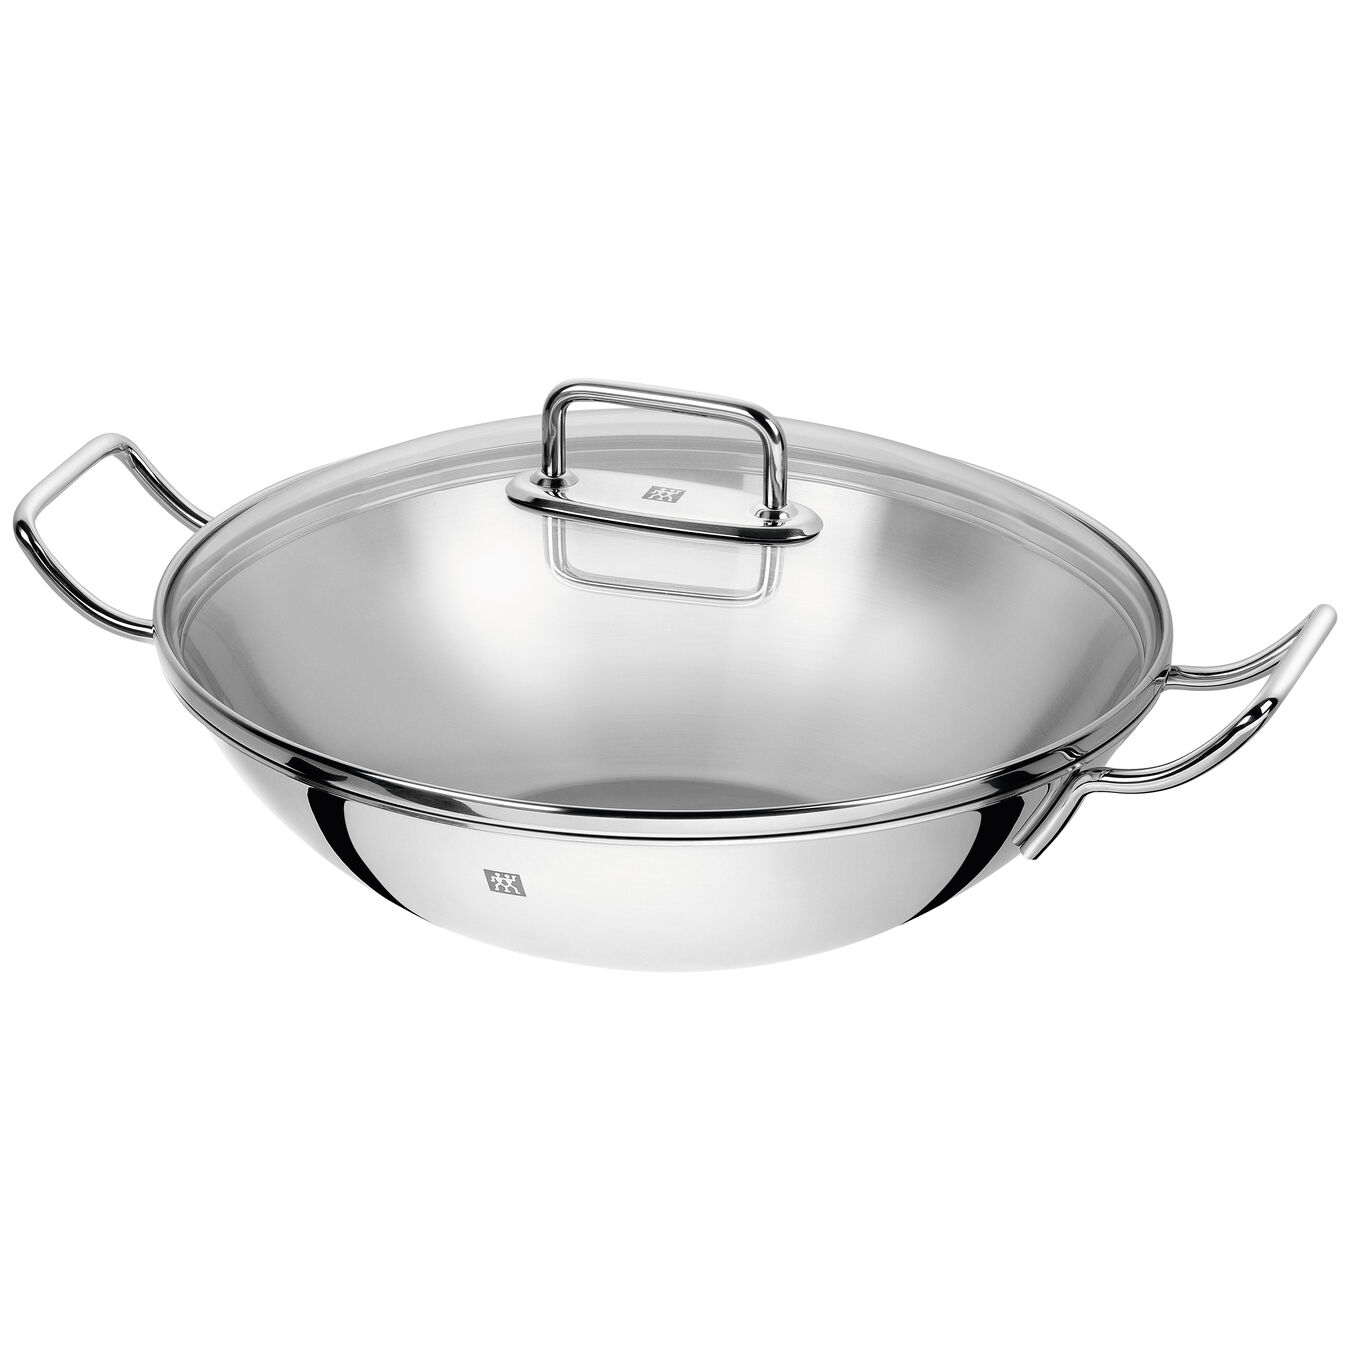 32 cm / 12.5 inch 18/10 Stainless Steel Wok,,large 2